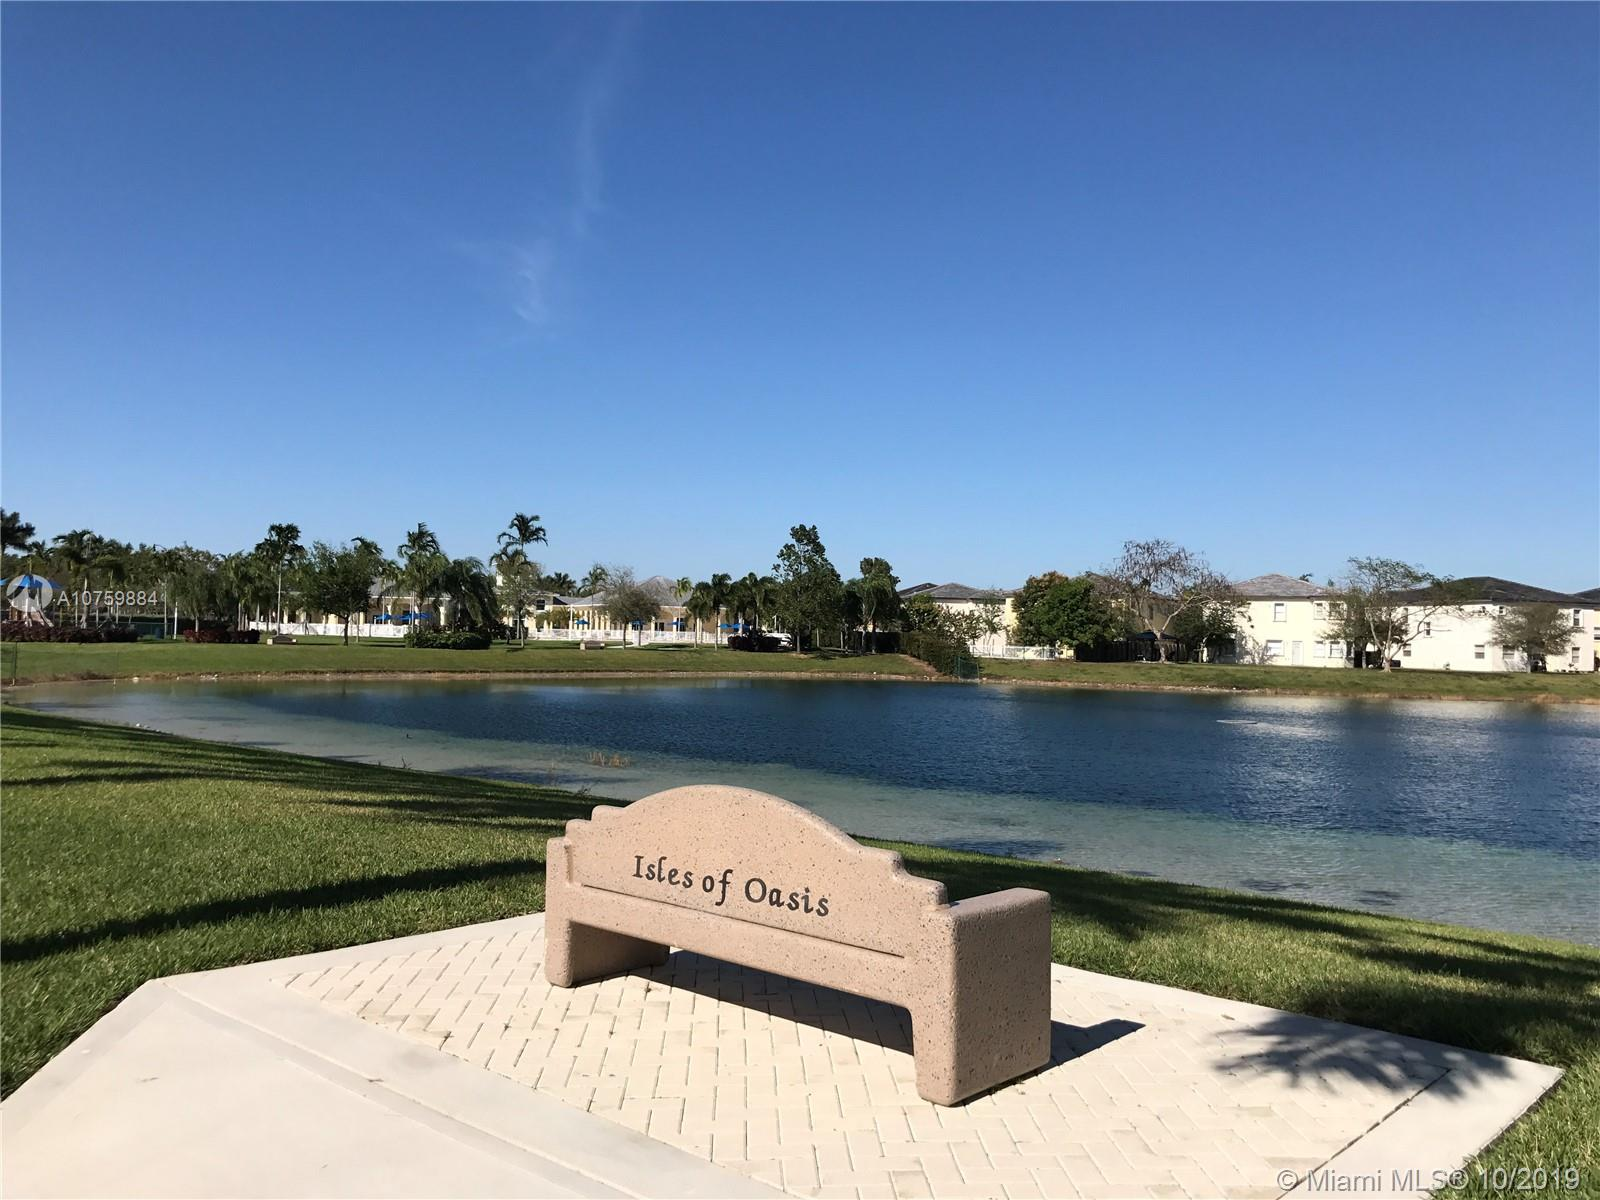 134 SE 28th Ter #7, Homestead, FL 33033 - Homestead, FL real estate listing